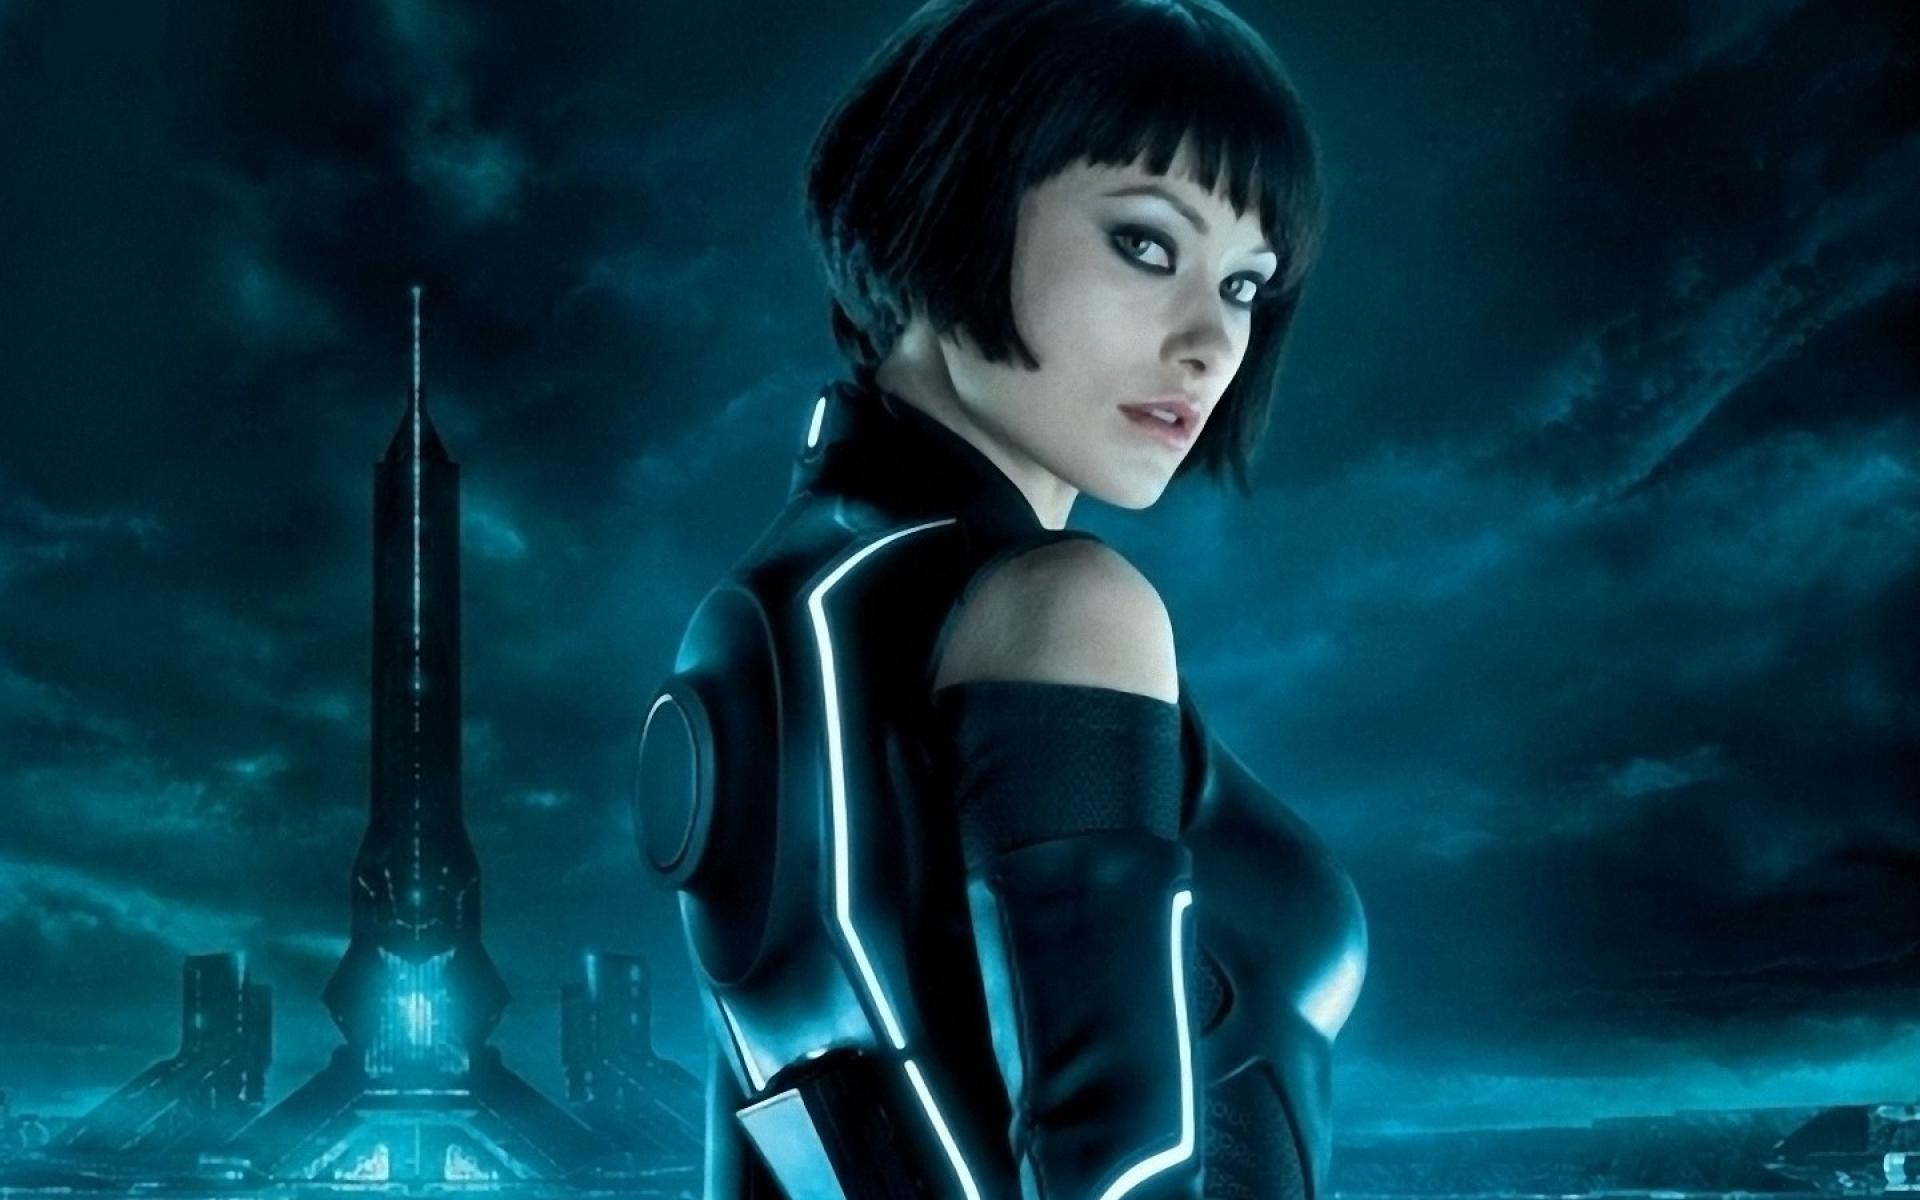 Olivia Wilde Tron Wallpapers Olivia Wilde Tron Stock Photos